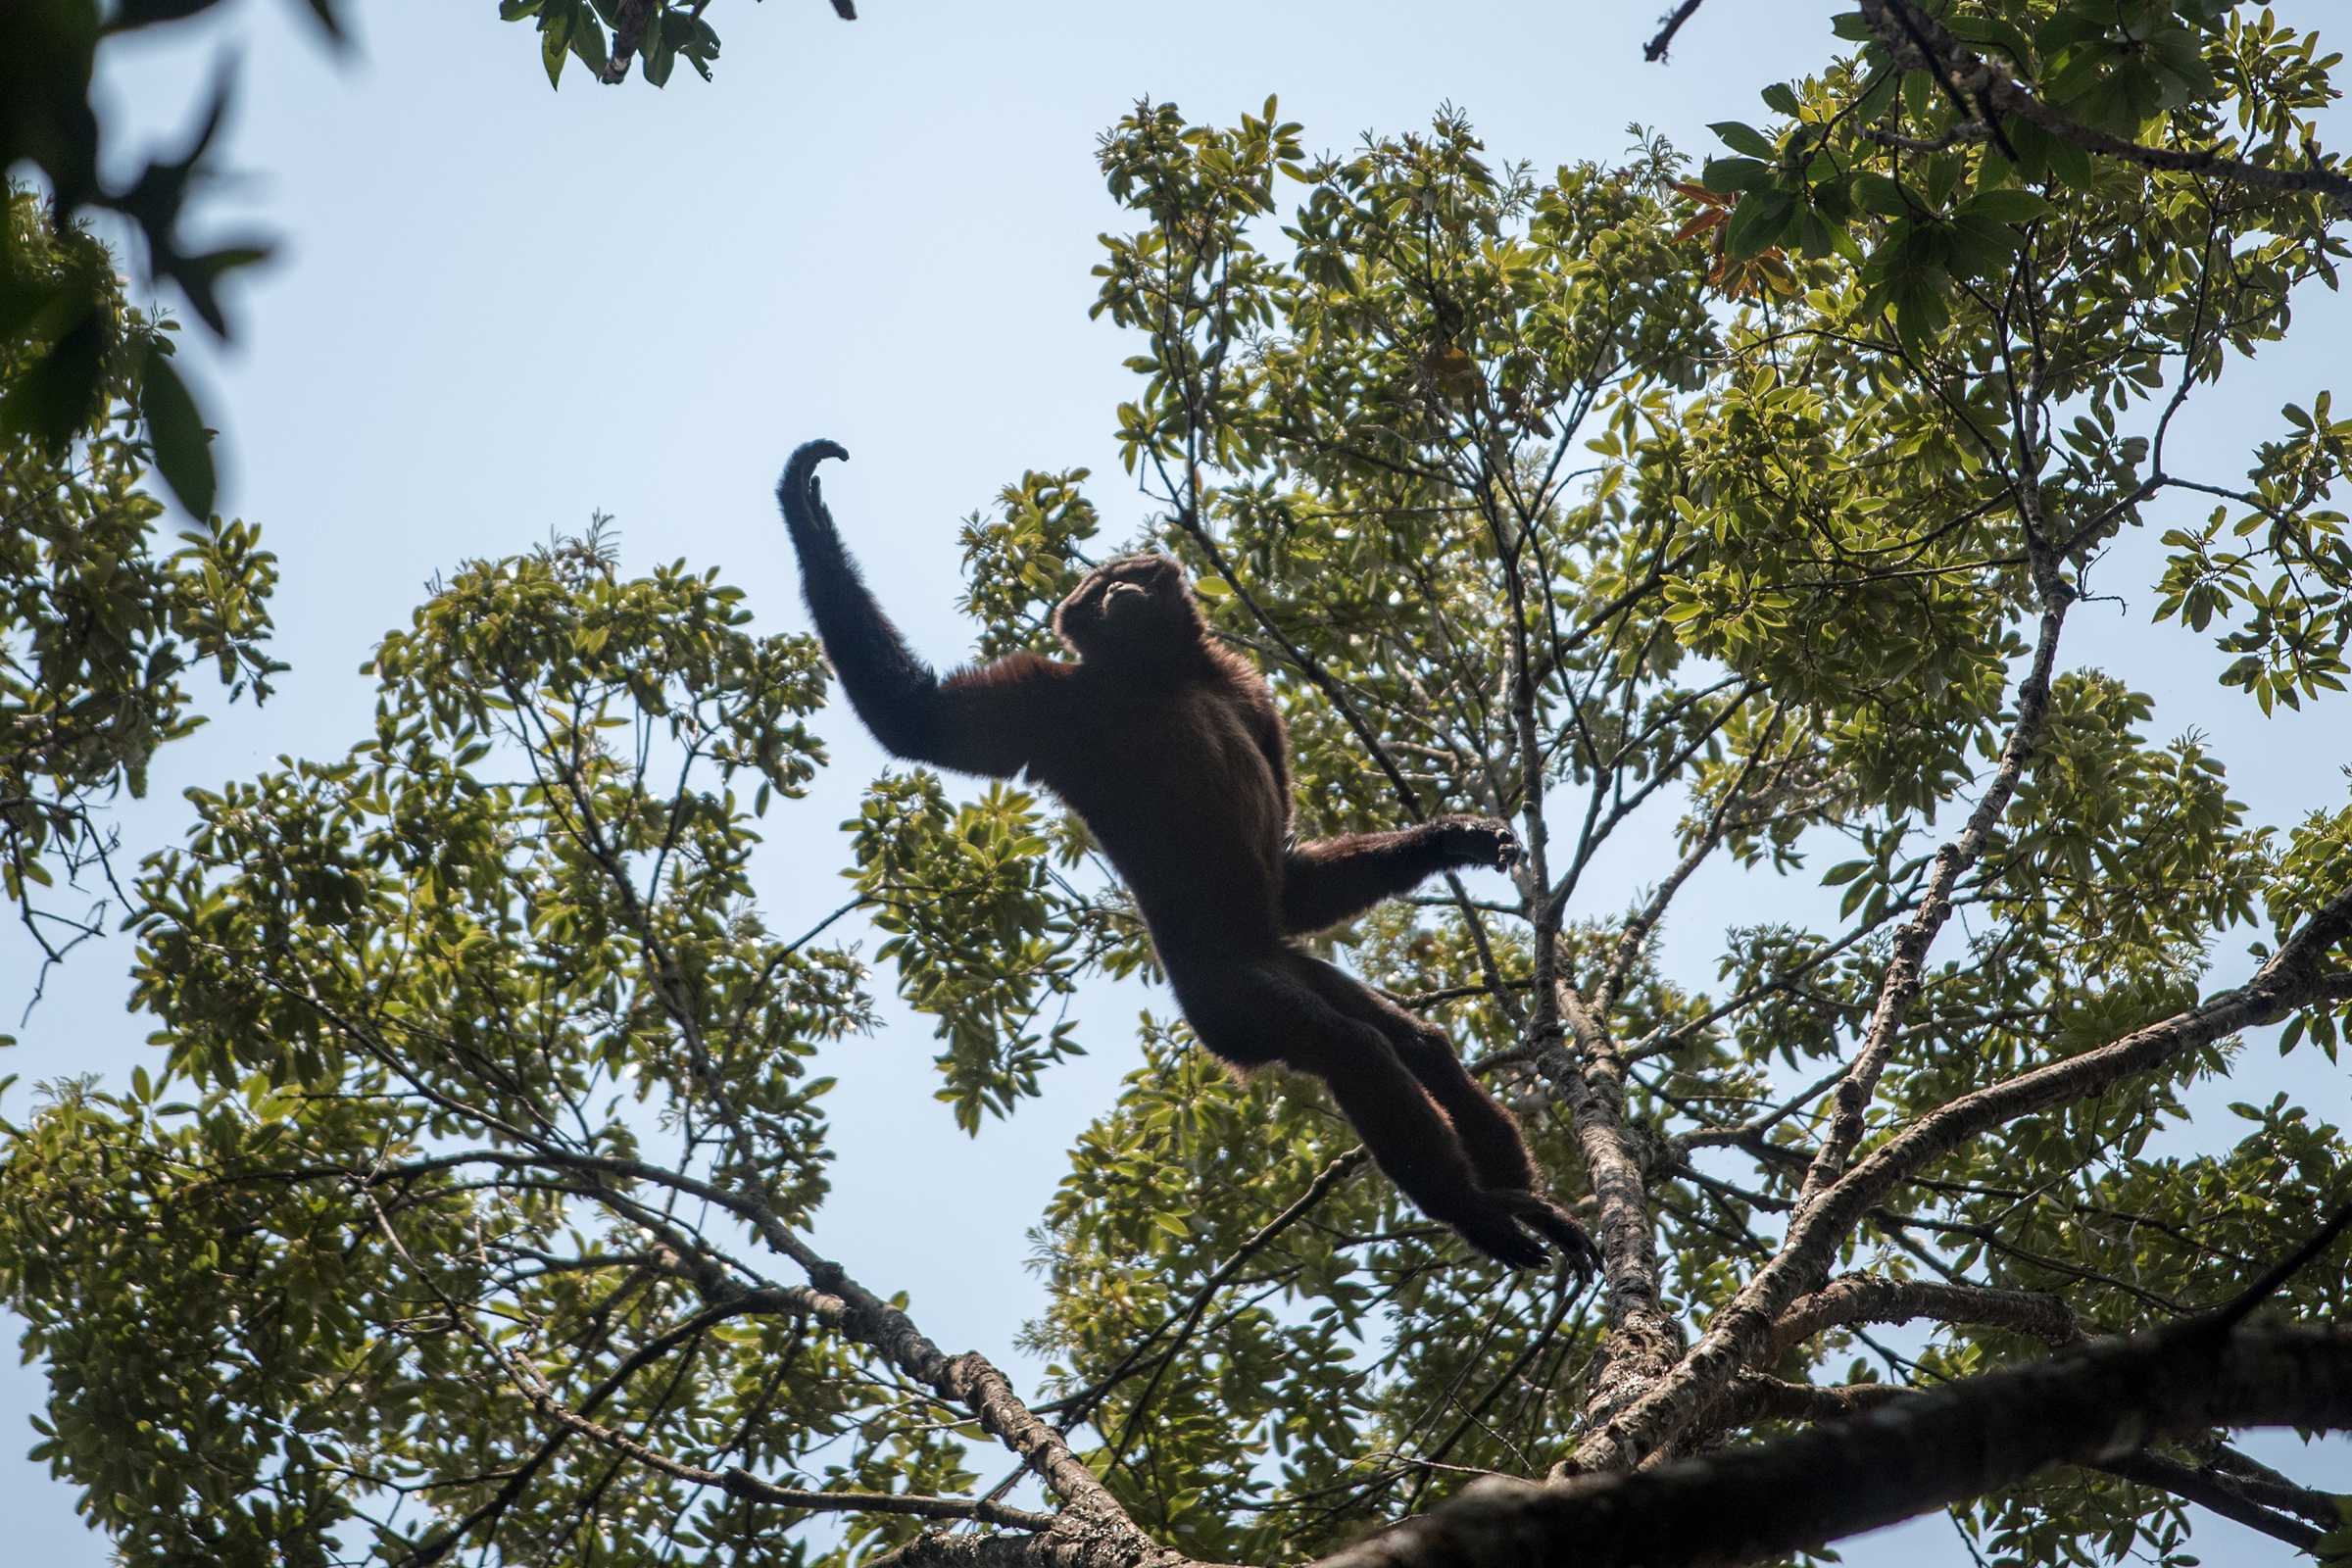 Gibbons use a form of locomotion called brachiation, which involves swinging and jumping from branch to branch, often high in the forest canopy.